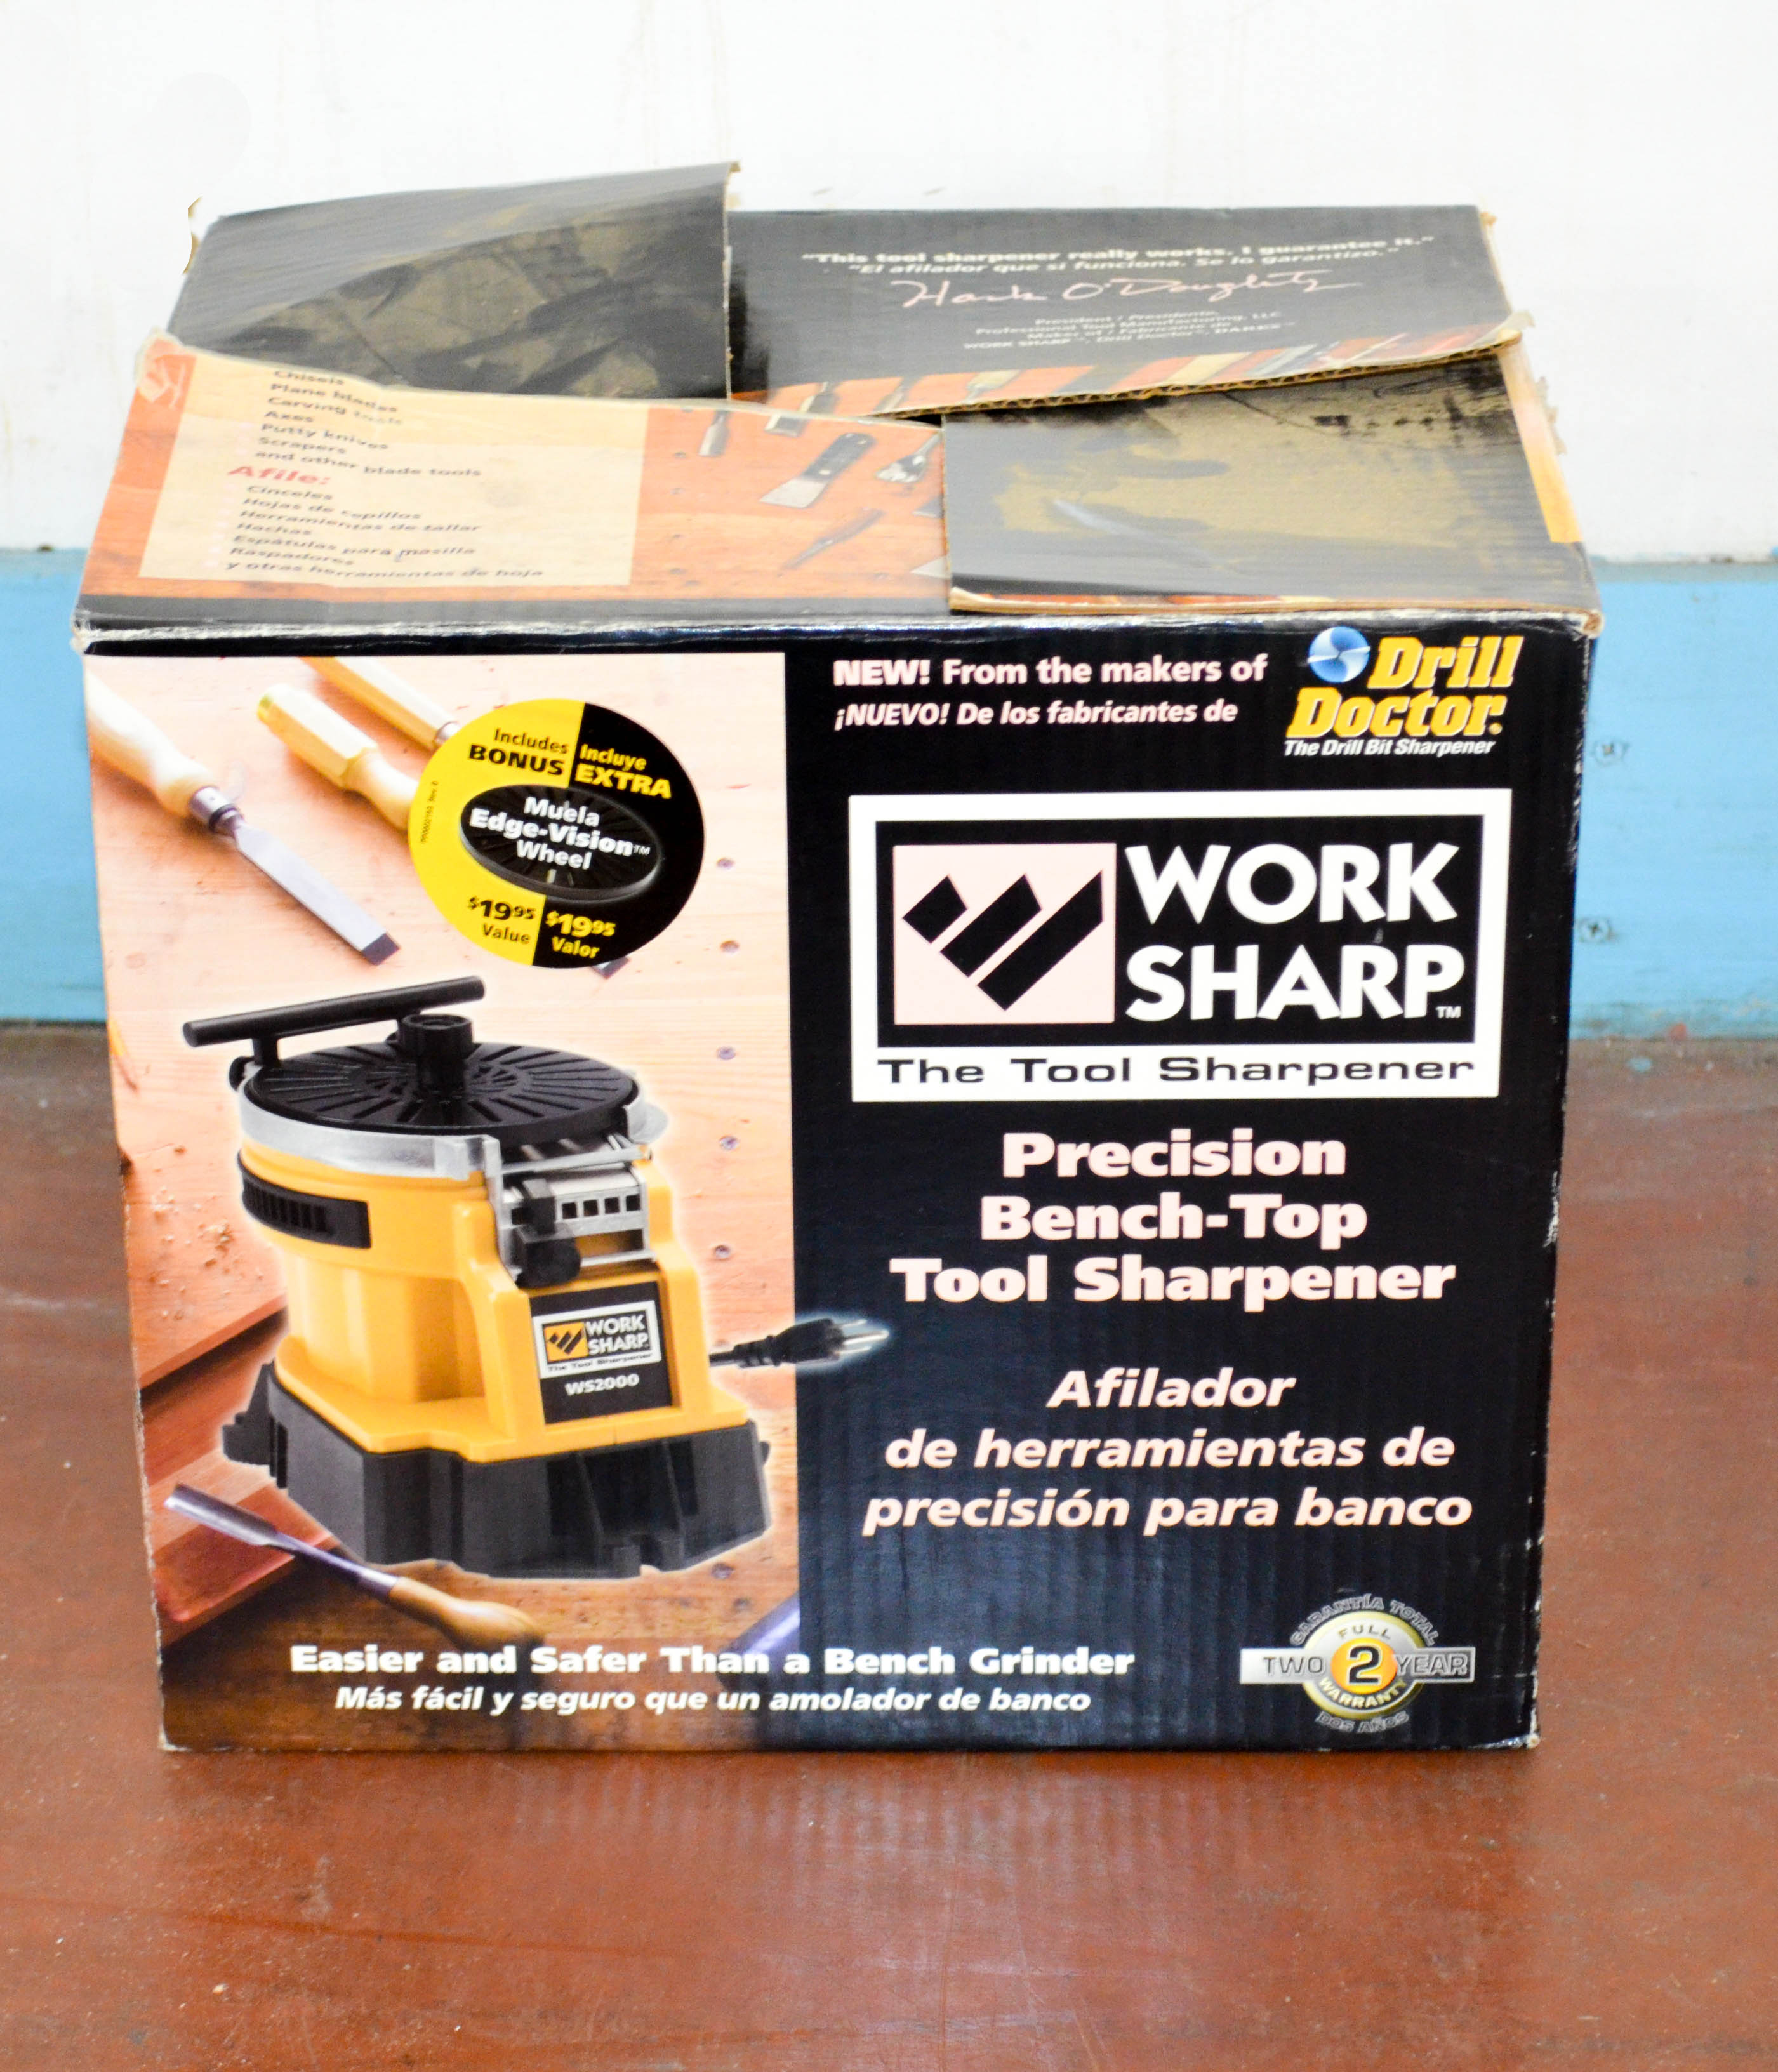 84 Work Sharp Bench Top Took Sharpener